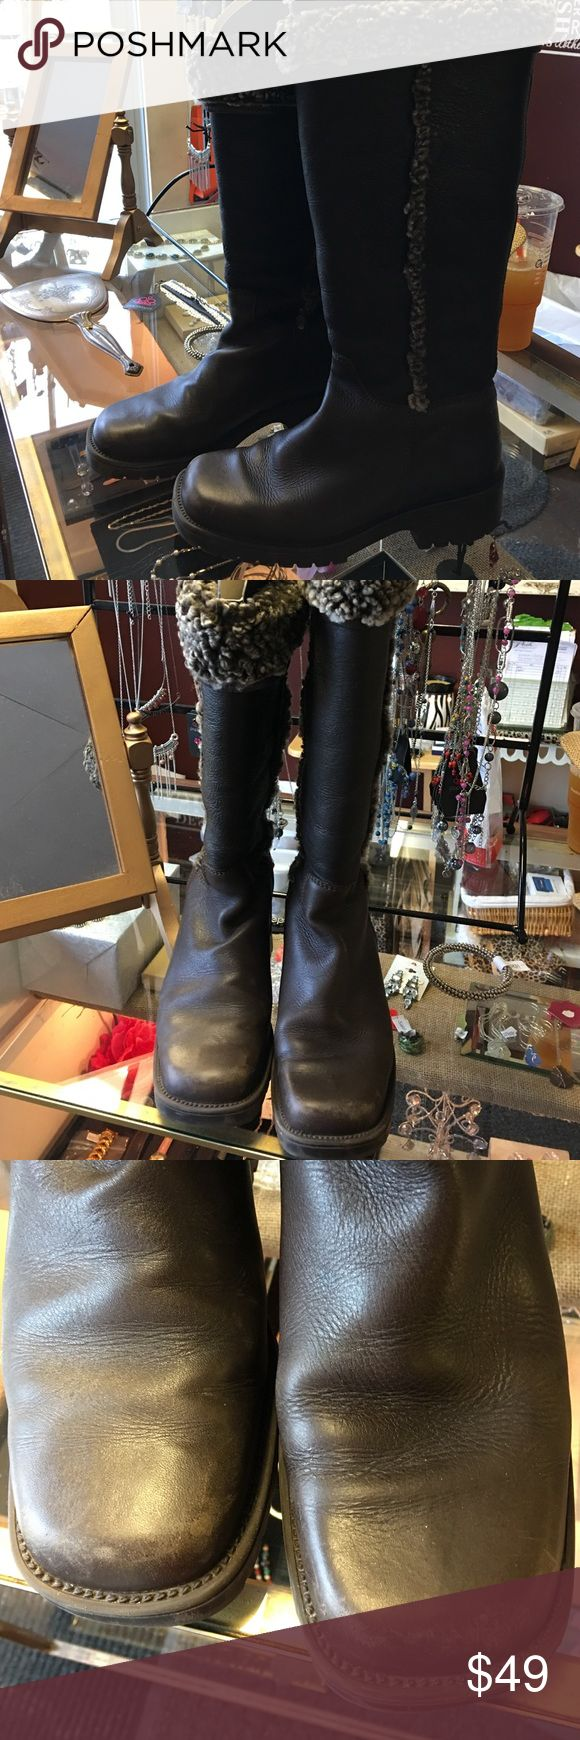 LL BEAN Leather and shearling boots Gorgeous soft leather boots in chocolate brown trimmed with curly shearling . Can be rolled down to make a shorter boot. Adorbs!!! LL Bean Shoes Winter & Rain Boots